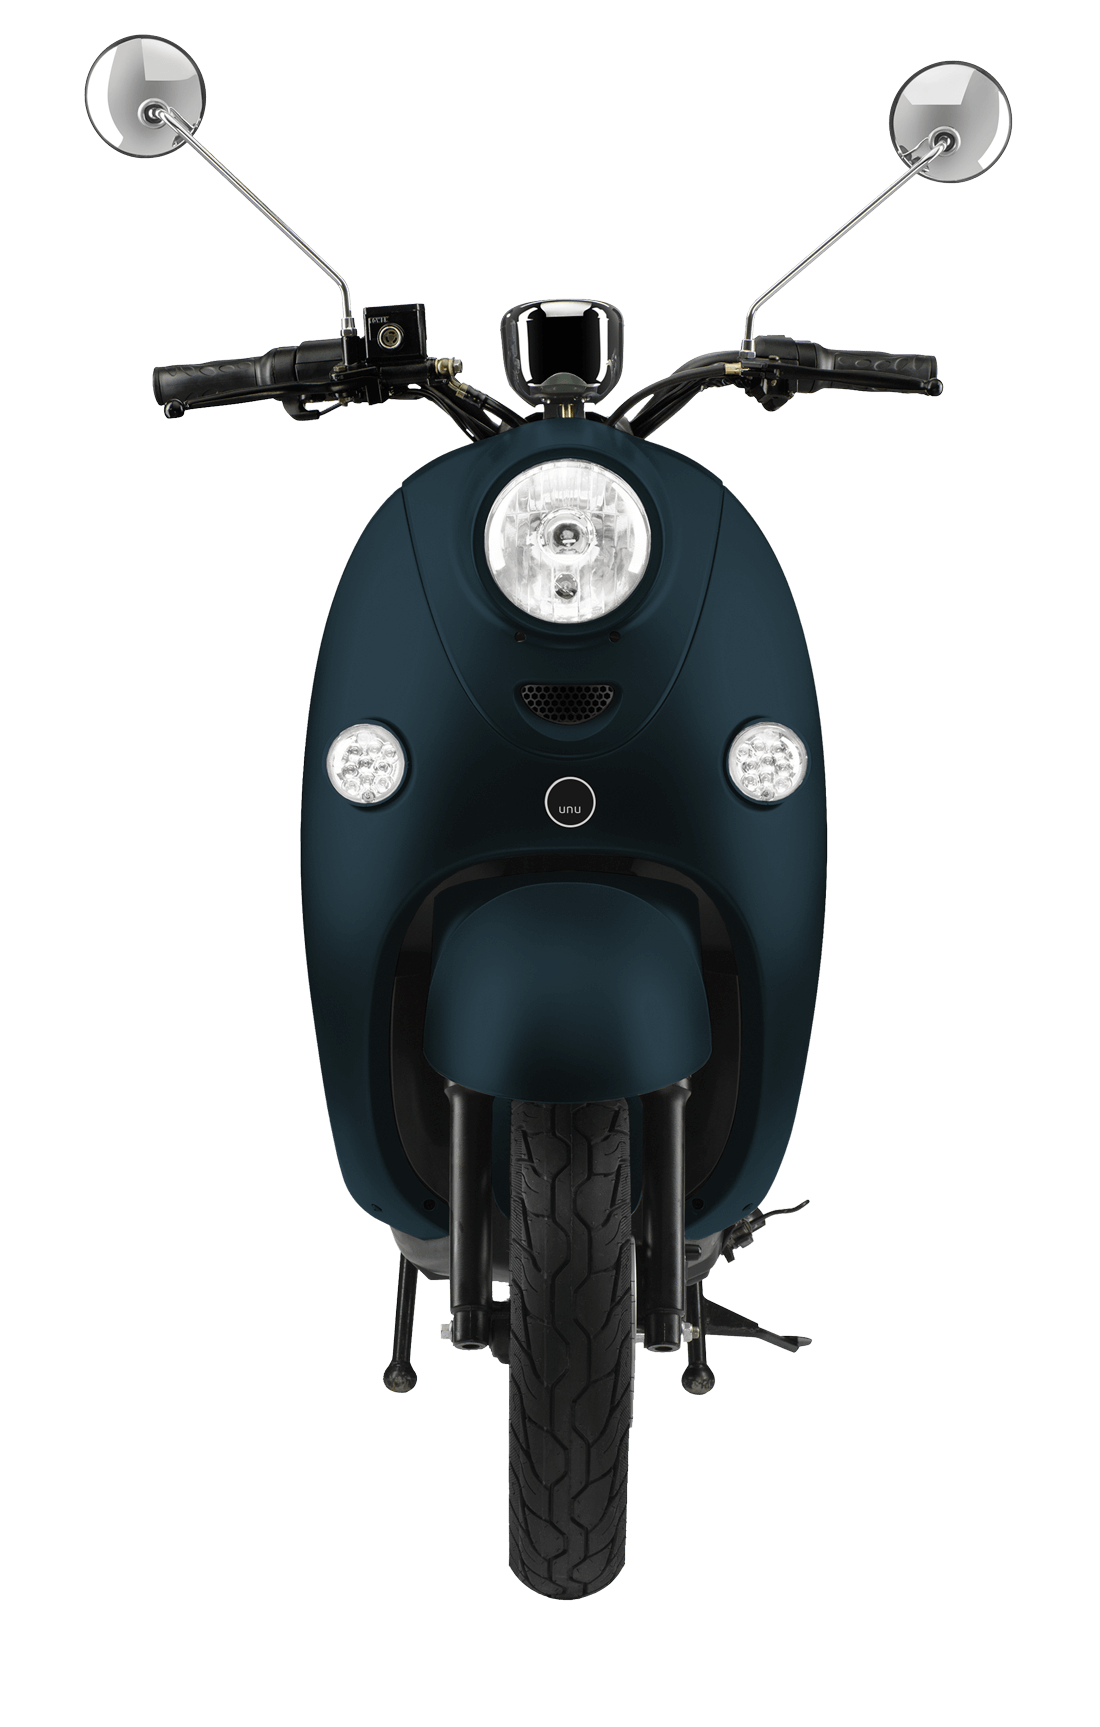 unu electric scooter